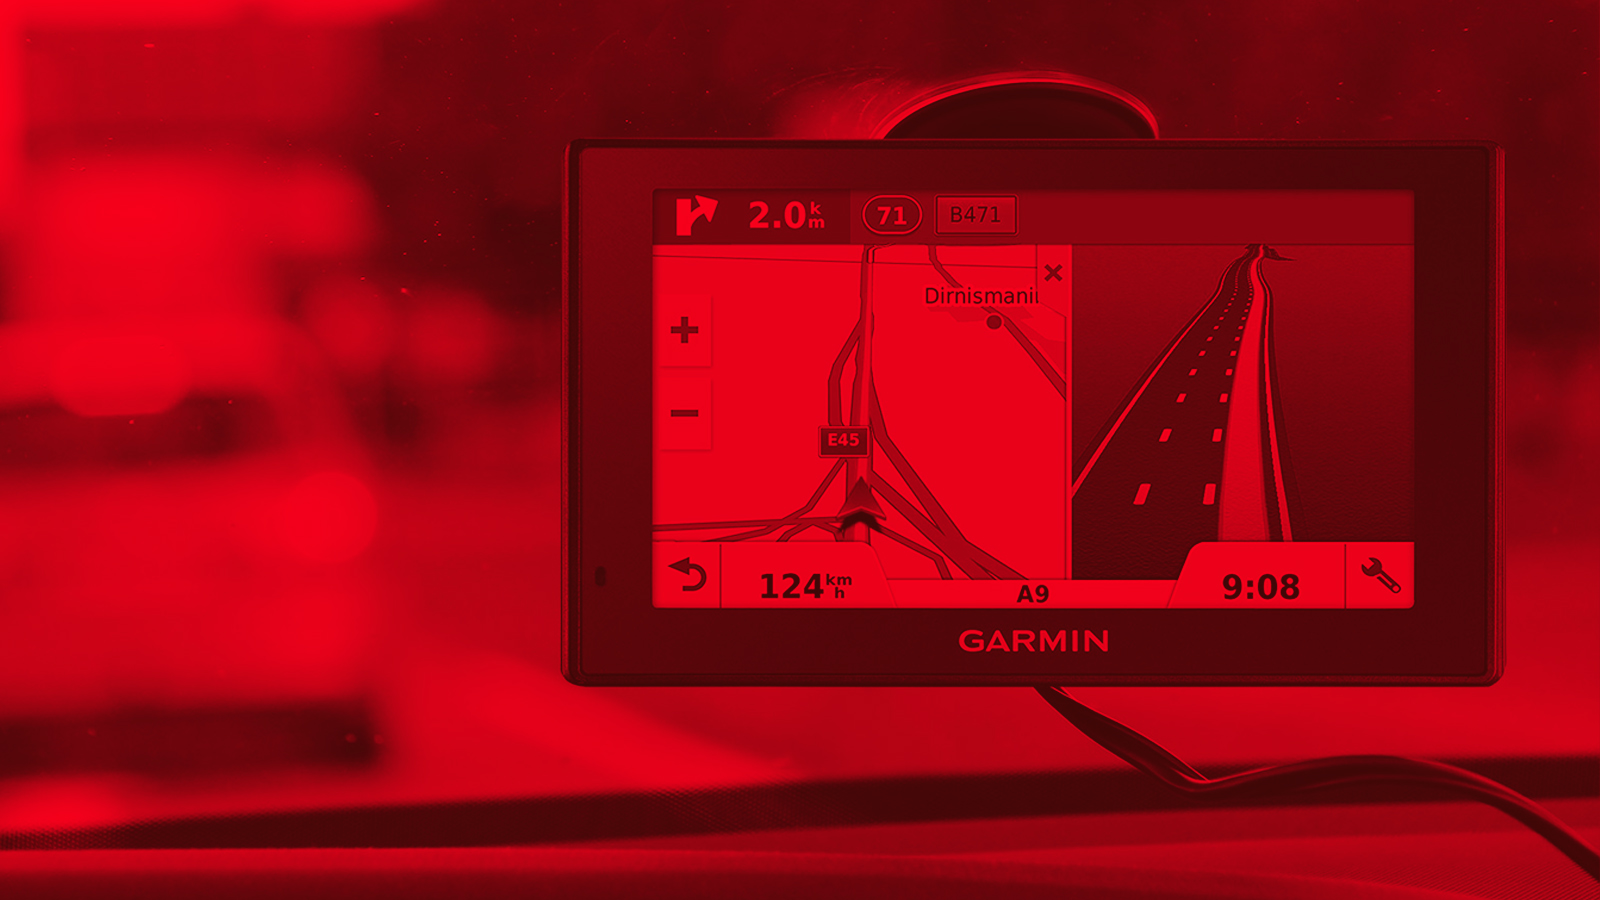 Take Your Navigation To The Next Level